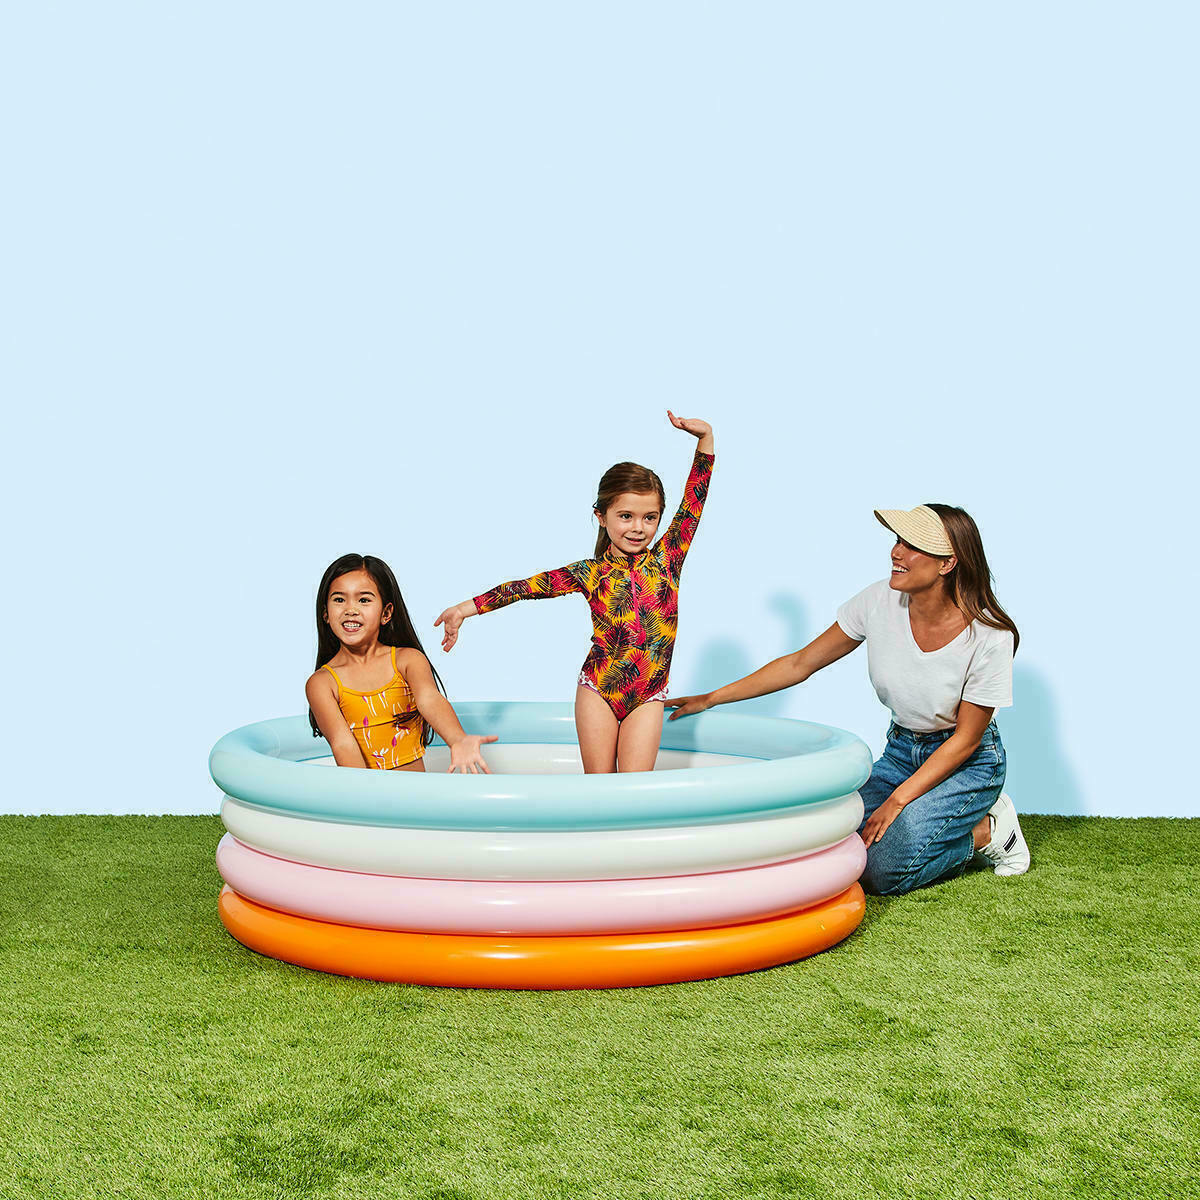 Kids Swimming Pool Above Ground Play Inflatable Round Family Pools Xmas Gifts AU